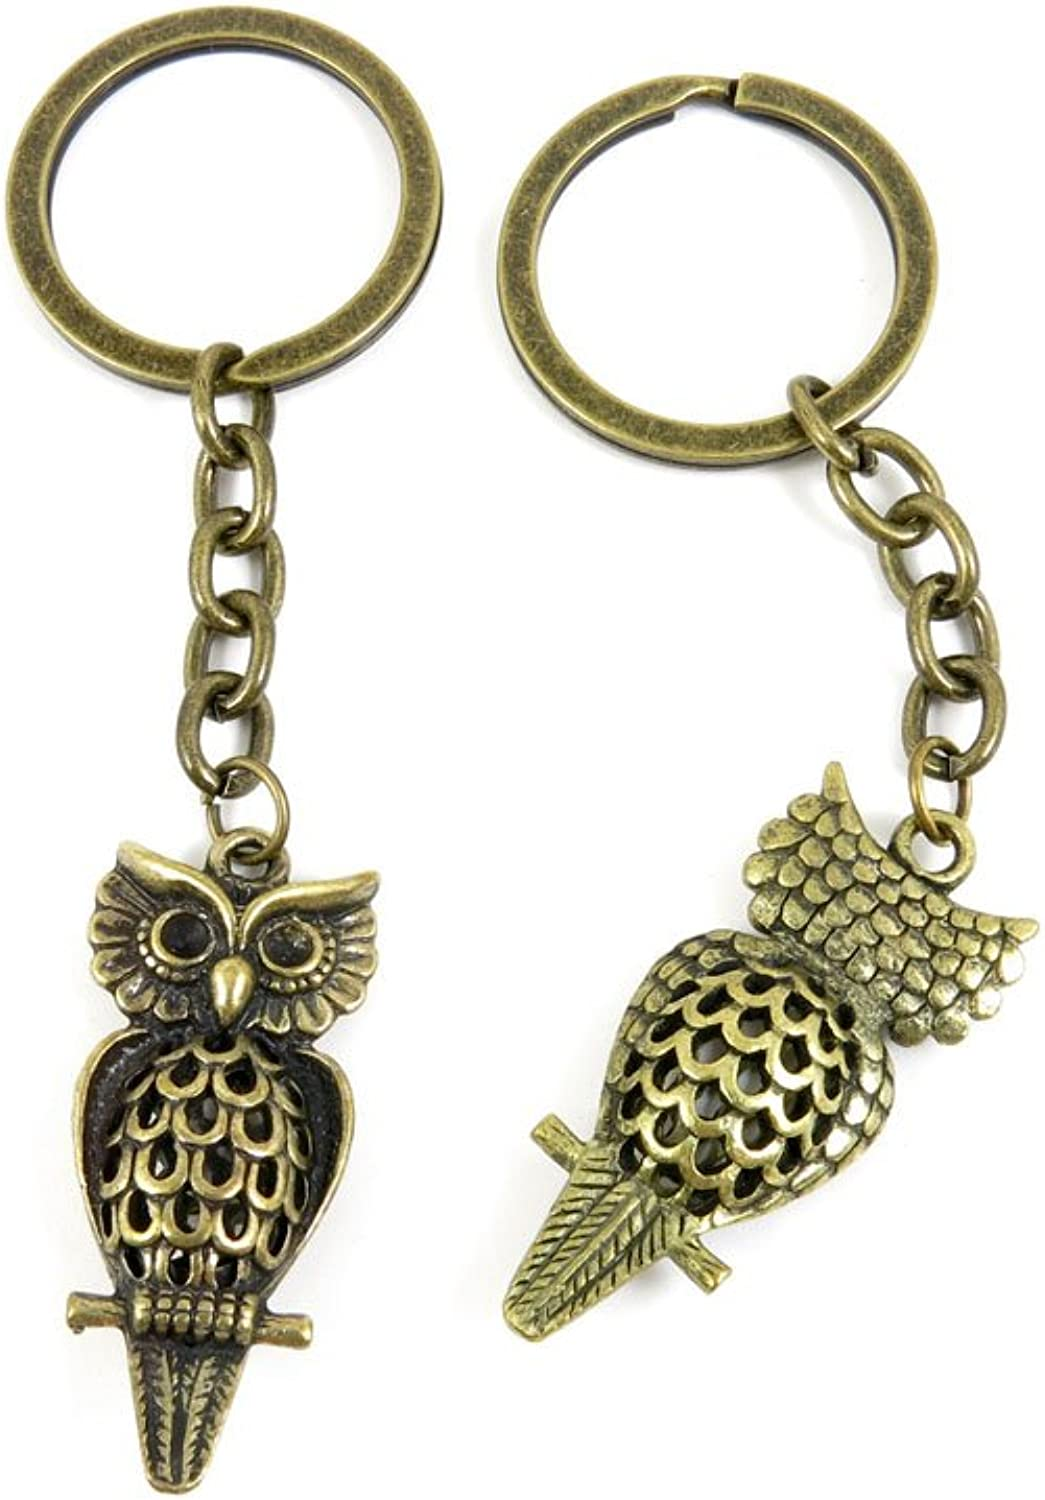 40 PCS Keyring Car Door Key Ring Tag Chain Keychain Wholesale Suppliers Charms Handmade H3KQ3 Hollow Owl